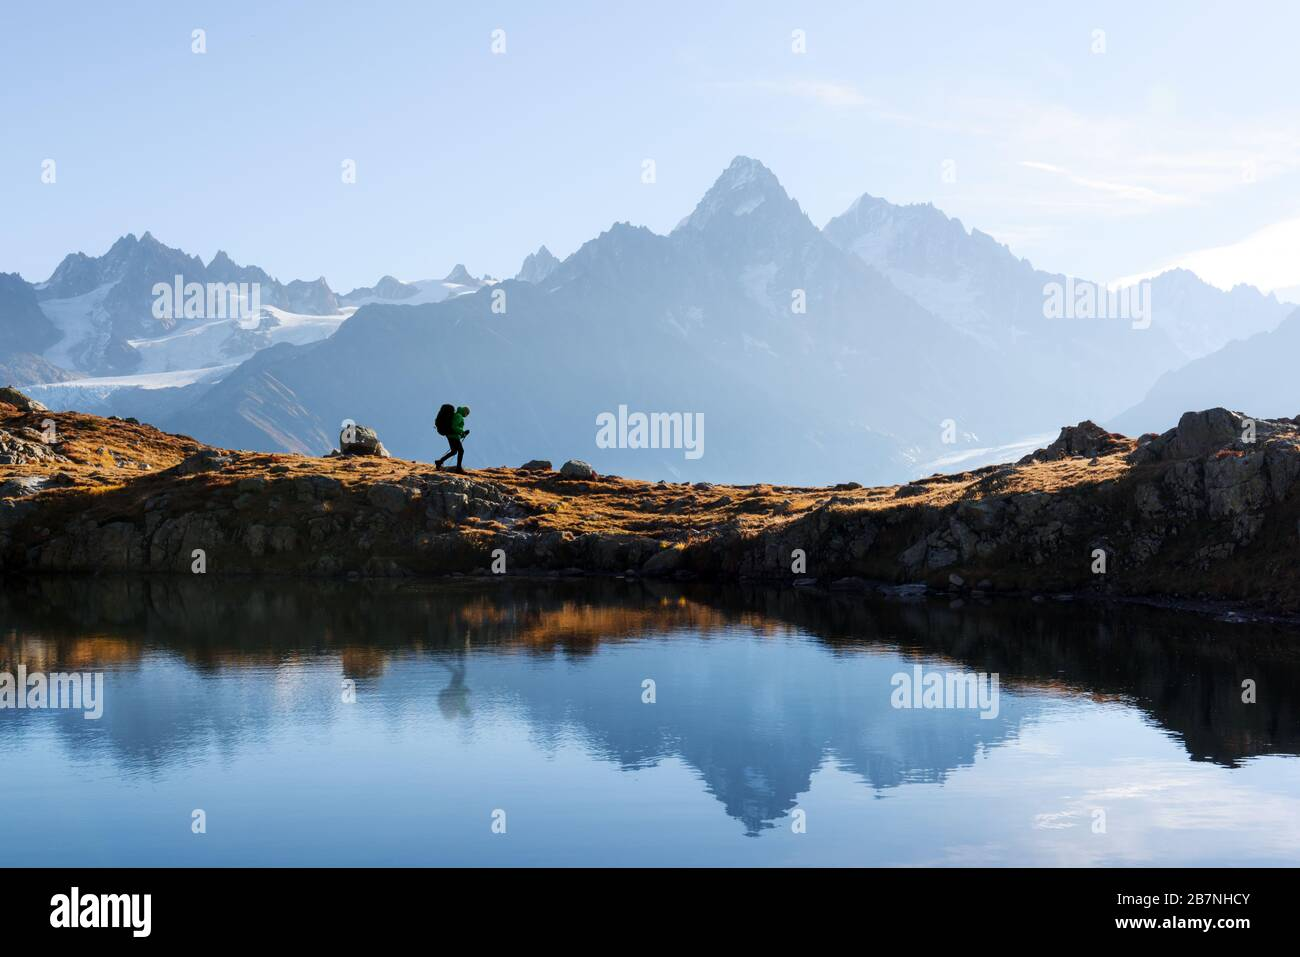 Amazing view on Monte Bianco mountains range with tourist on a background. Lac de Cheserys lake, Chamonix, Graian Alps. Landscape photography Stock Photo